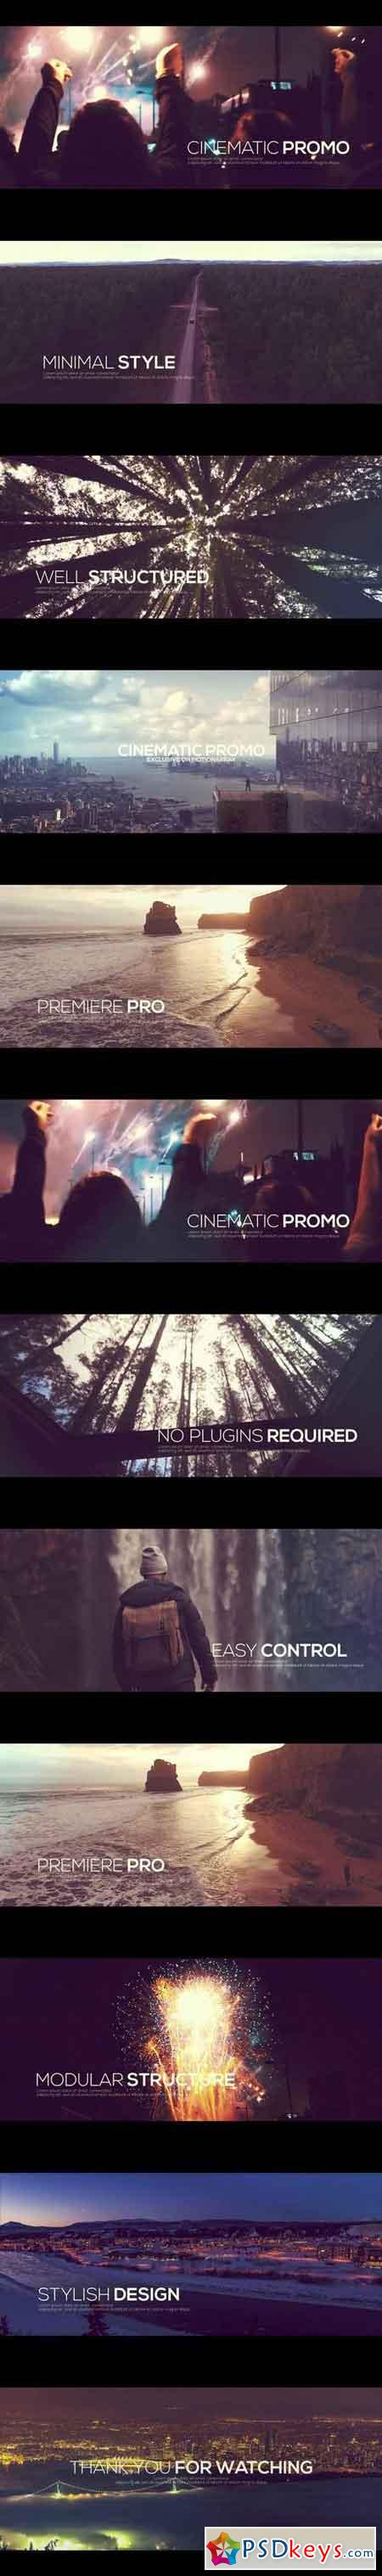 Cinematic Promo Premiere Pro Templates 57497 - After Effects Projects